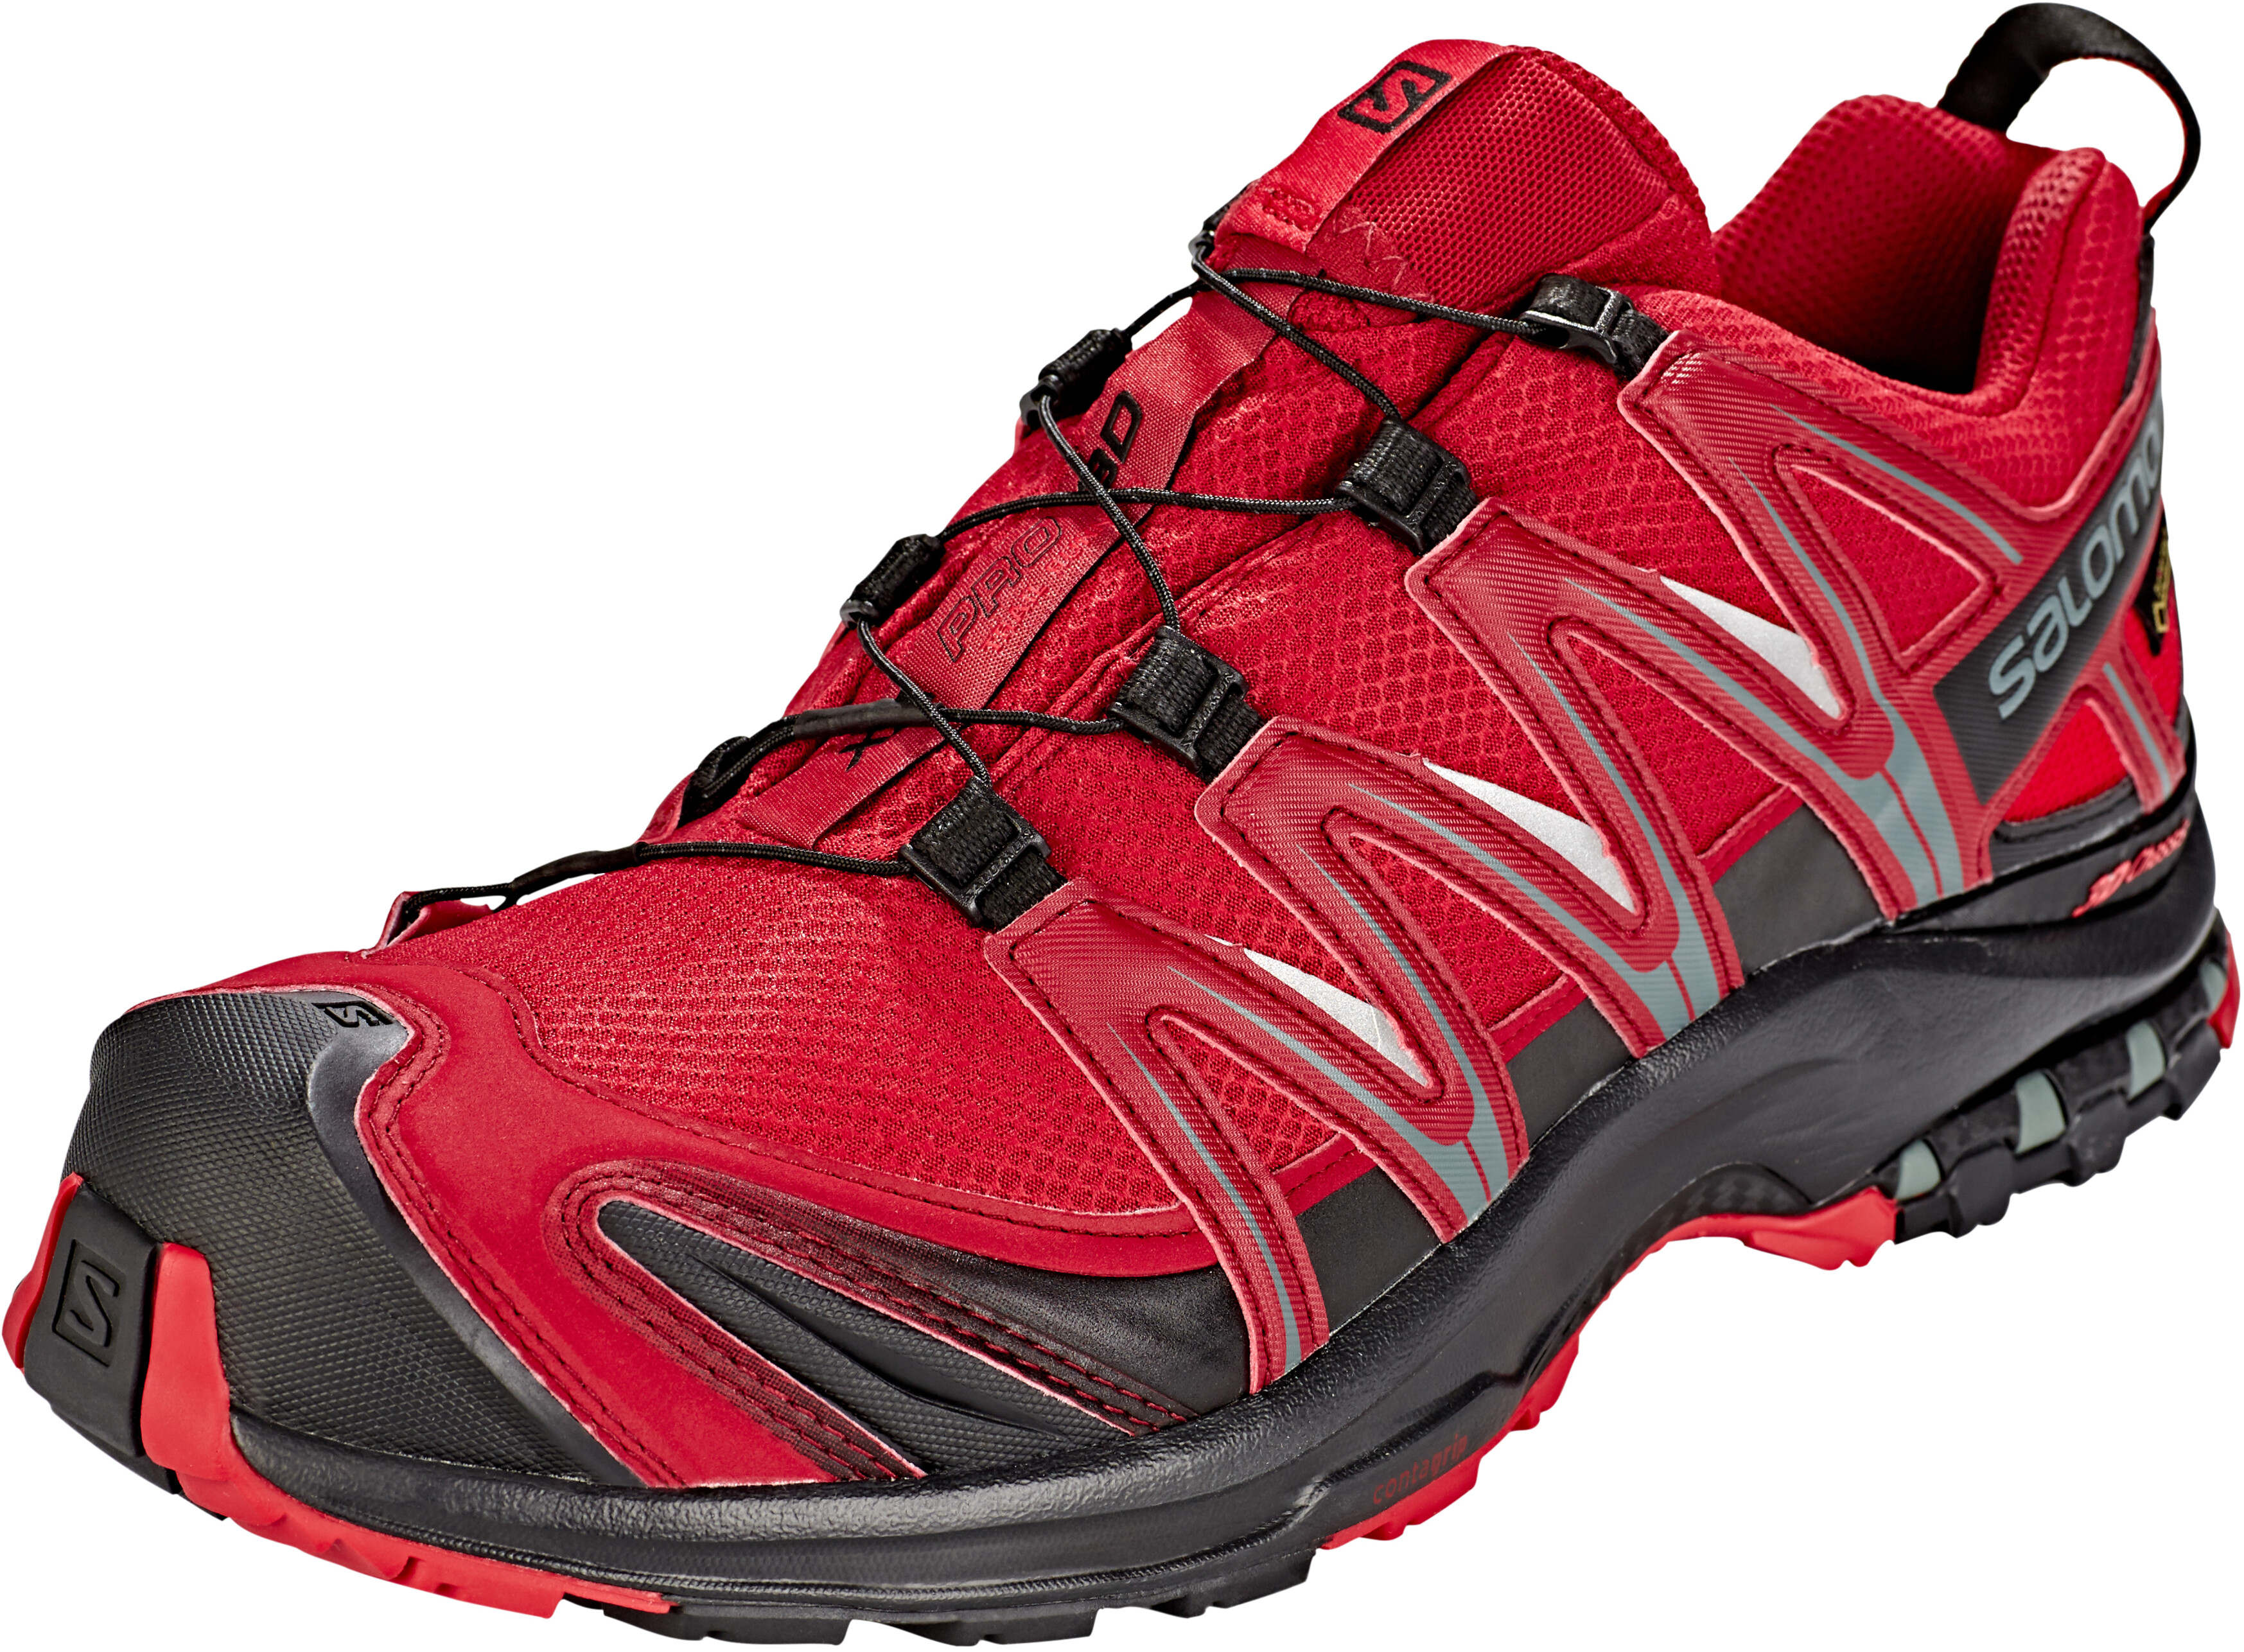 Salomon XA Pro 3D GTX Running Shoes Men red at Addnature.co.uk 6032db216f5